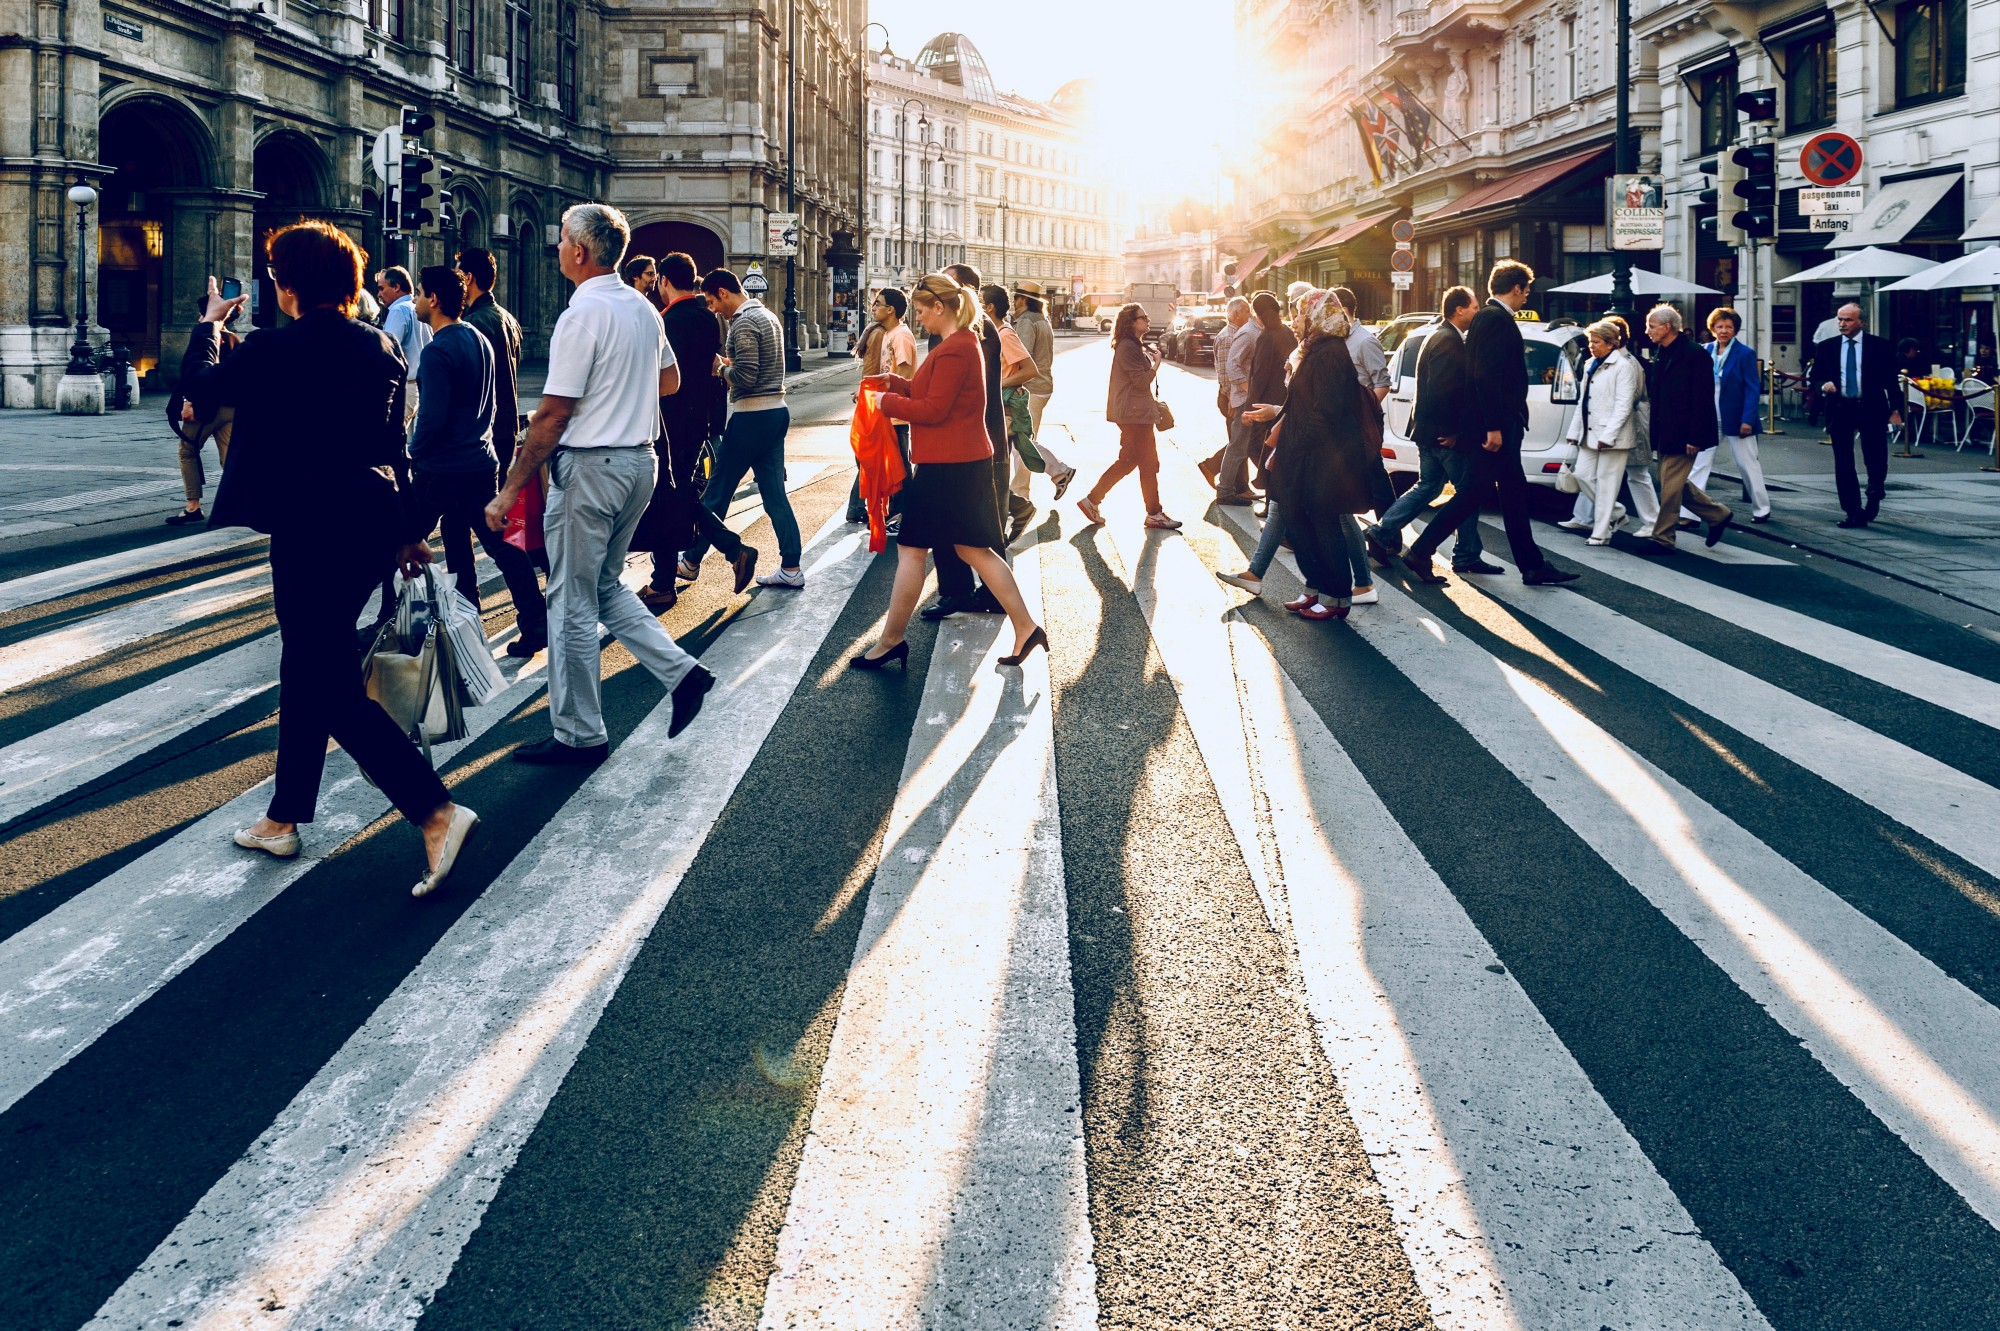 a crowd of people crossing the street in a big city